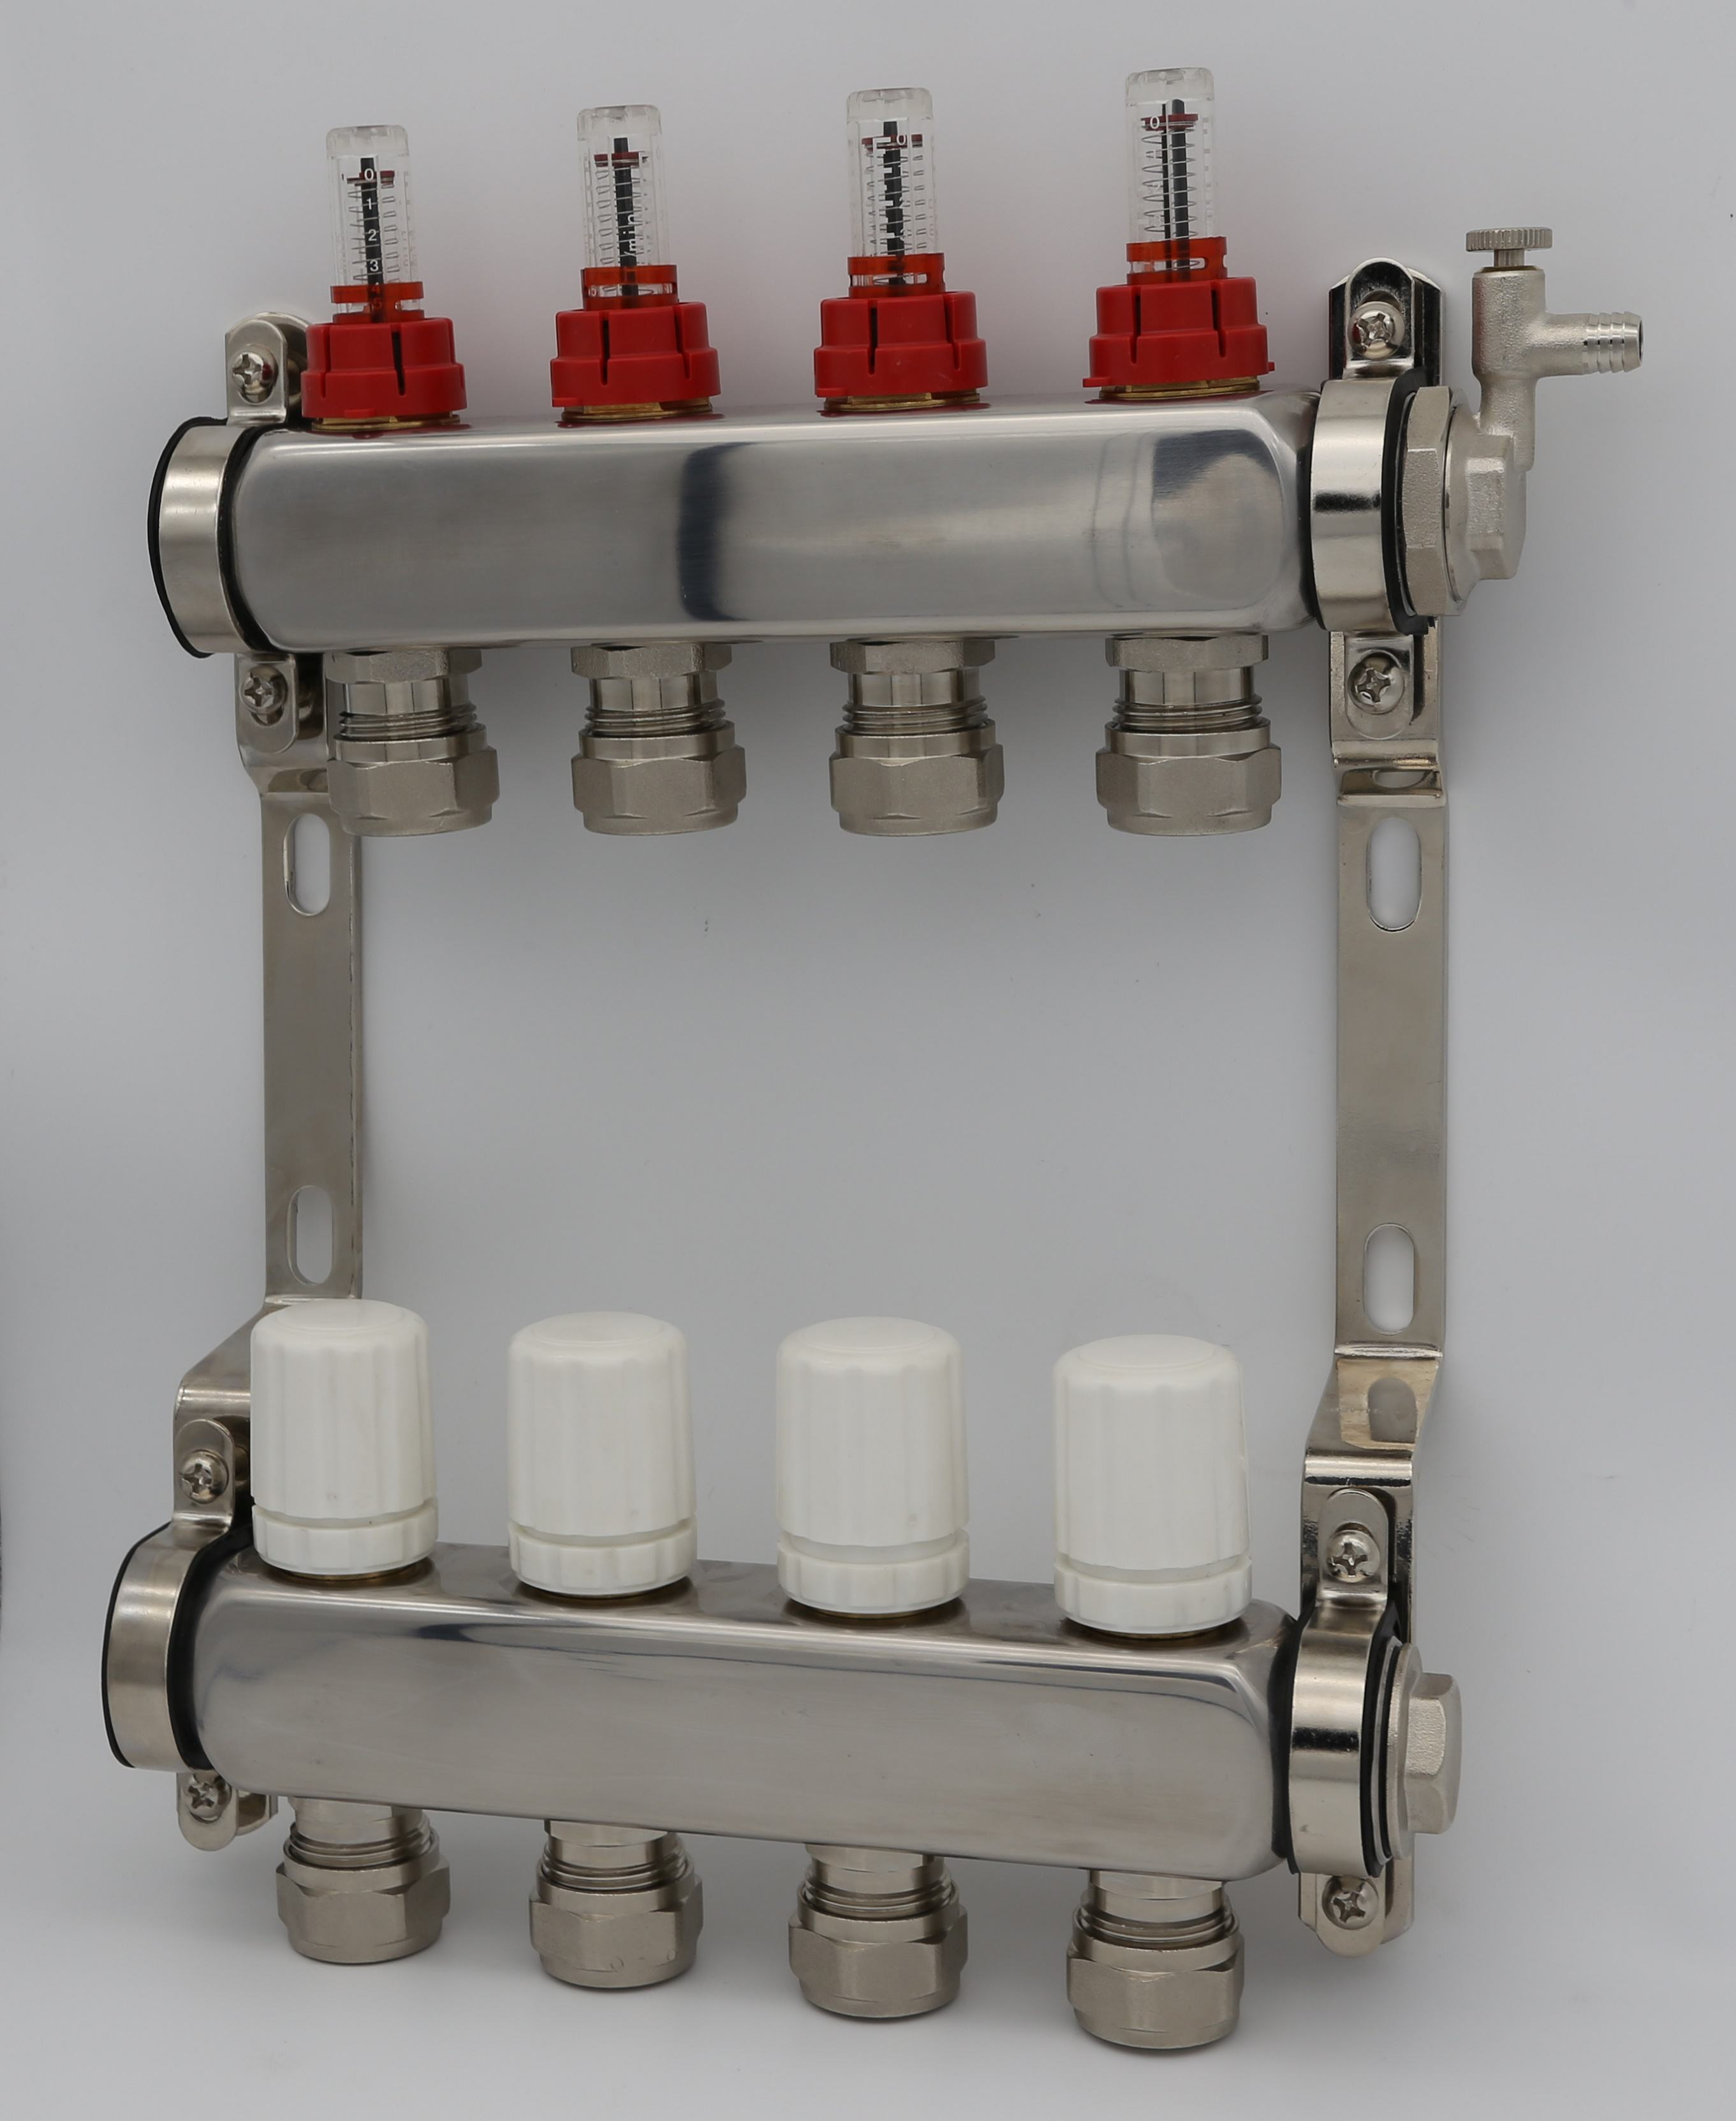 High Quality 304 Stainless Steel Underfloor Heating Manifold